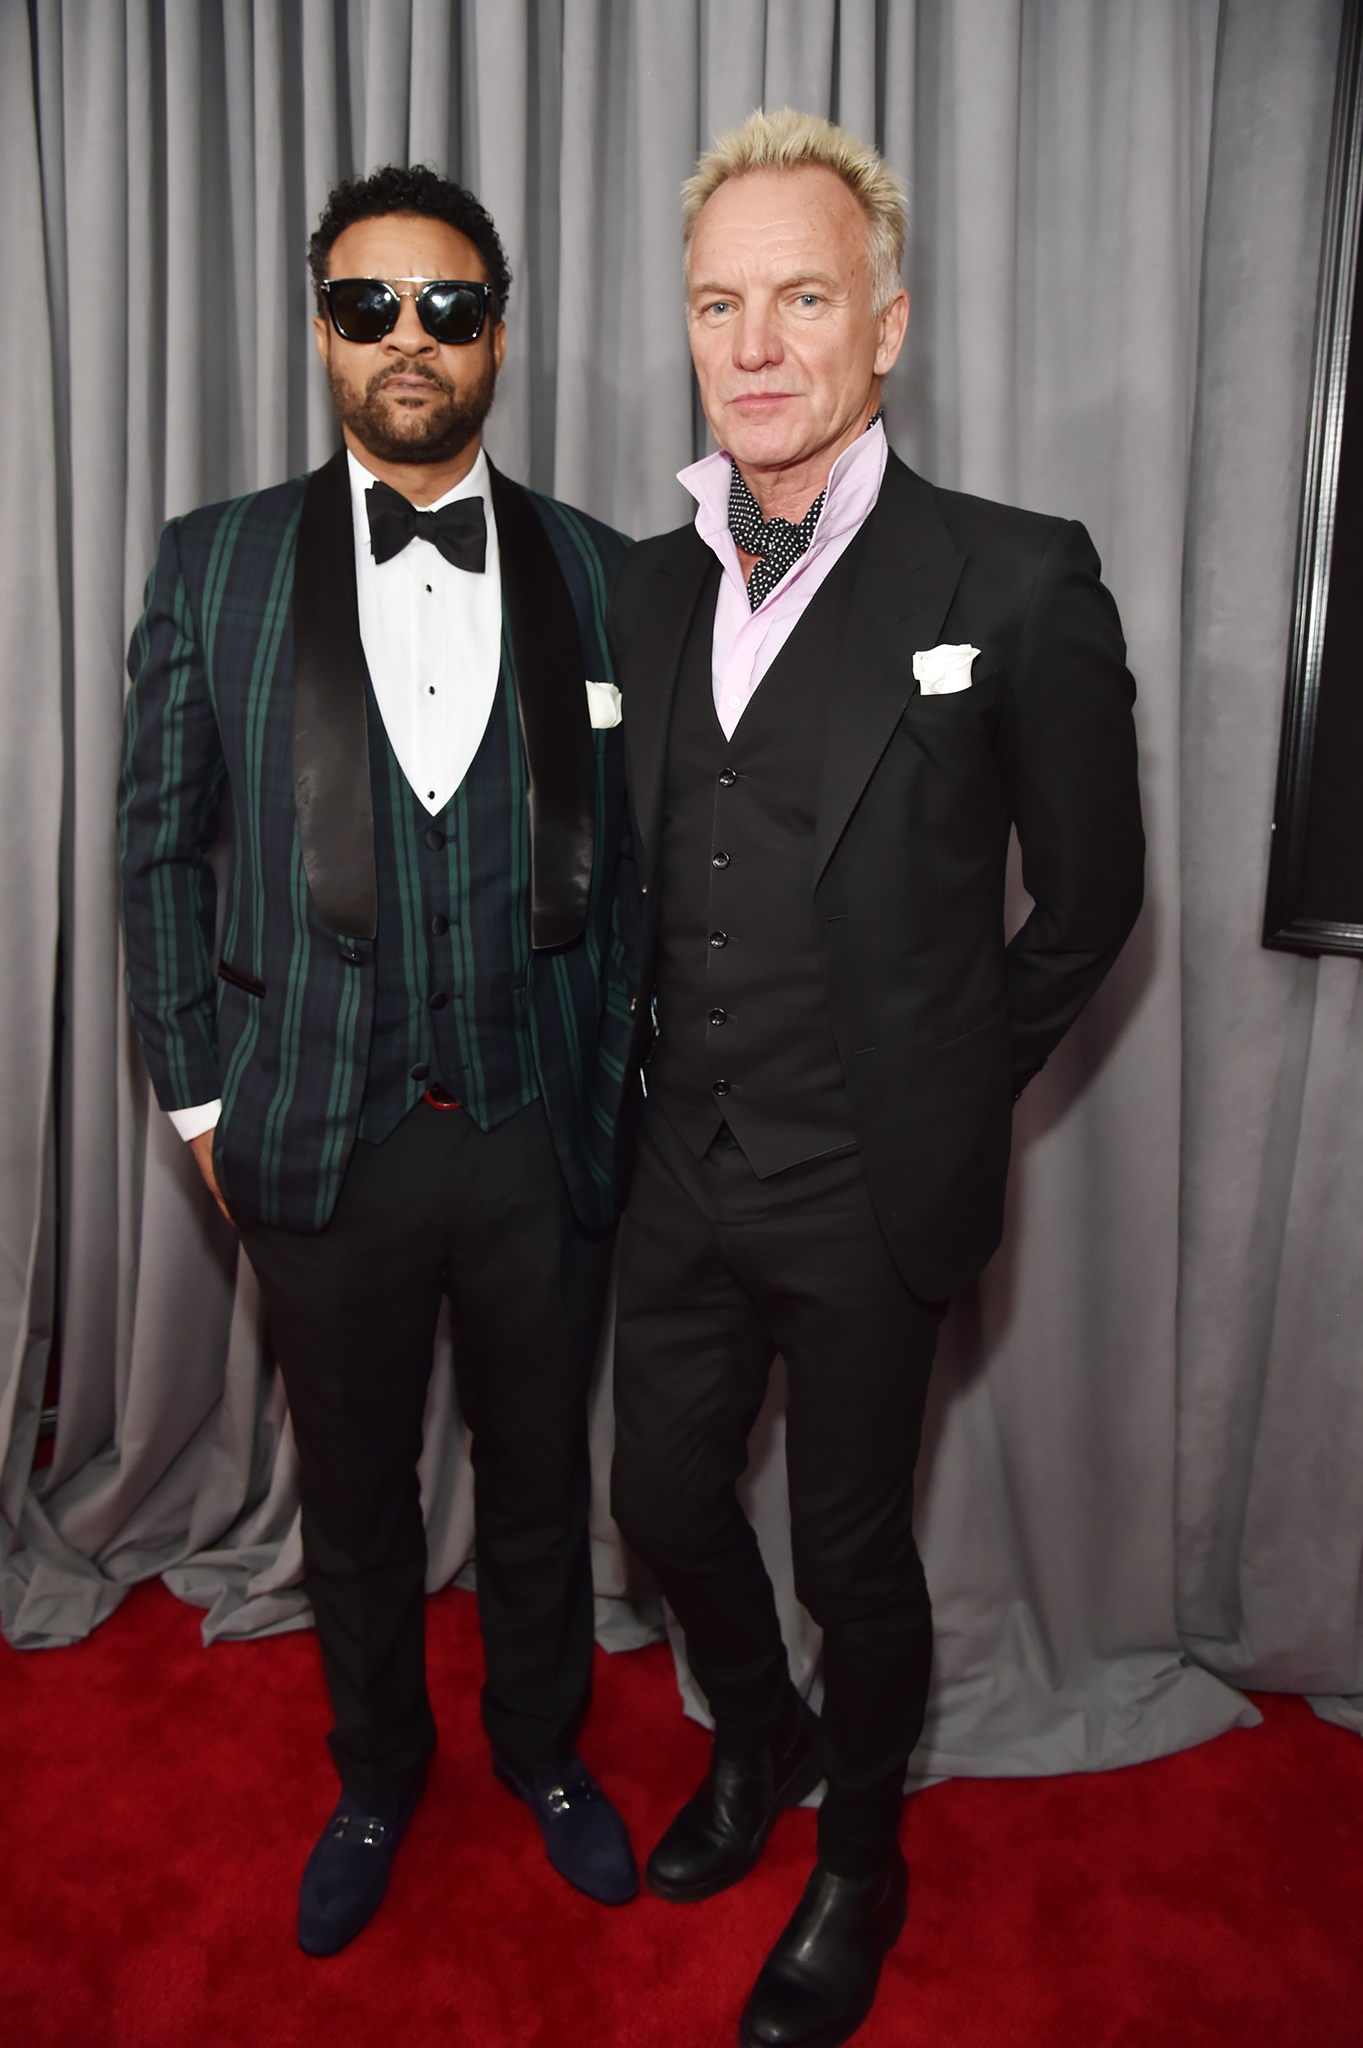 Recording artists Shaggy and Sting, white rose details, attend the 60th Annual GRAMMY Awards at Madison Square Garden on January 28, 2018 in New York City.